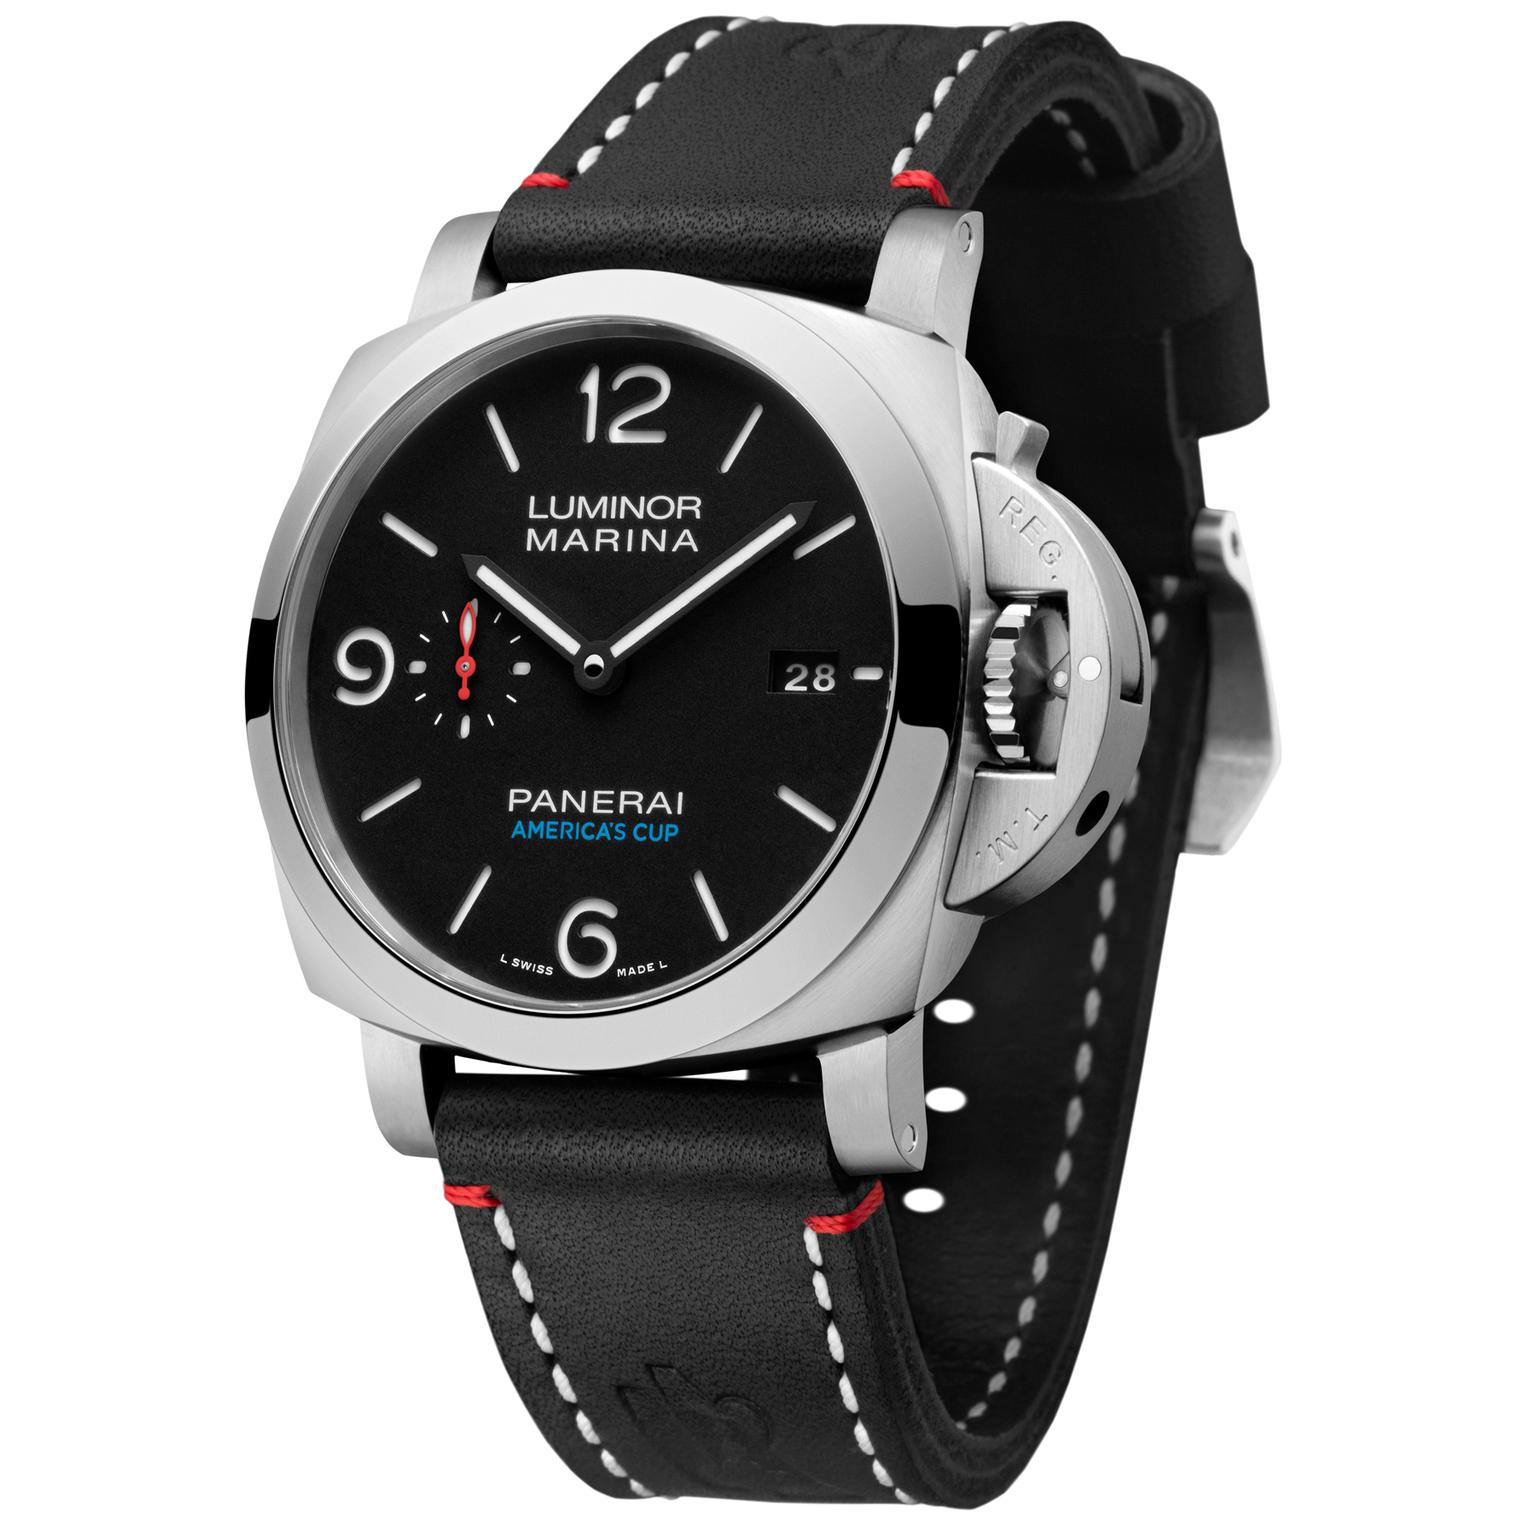 Panerai Luminor Marina 1950 Softbank Team Japan watch